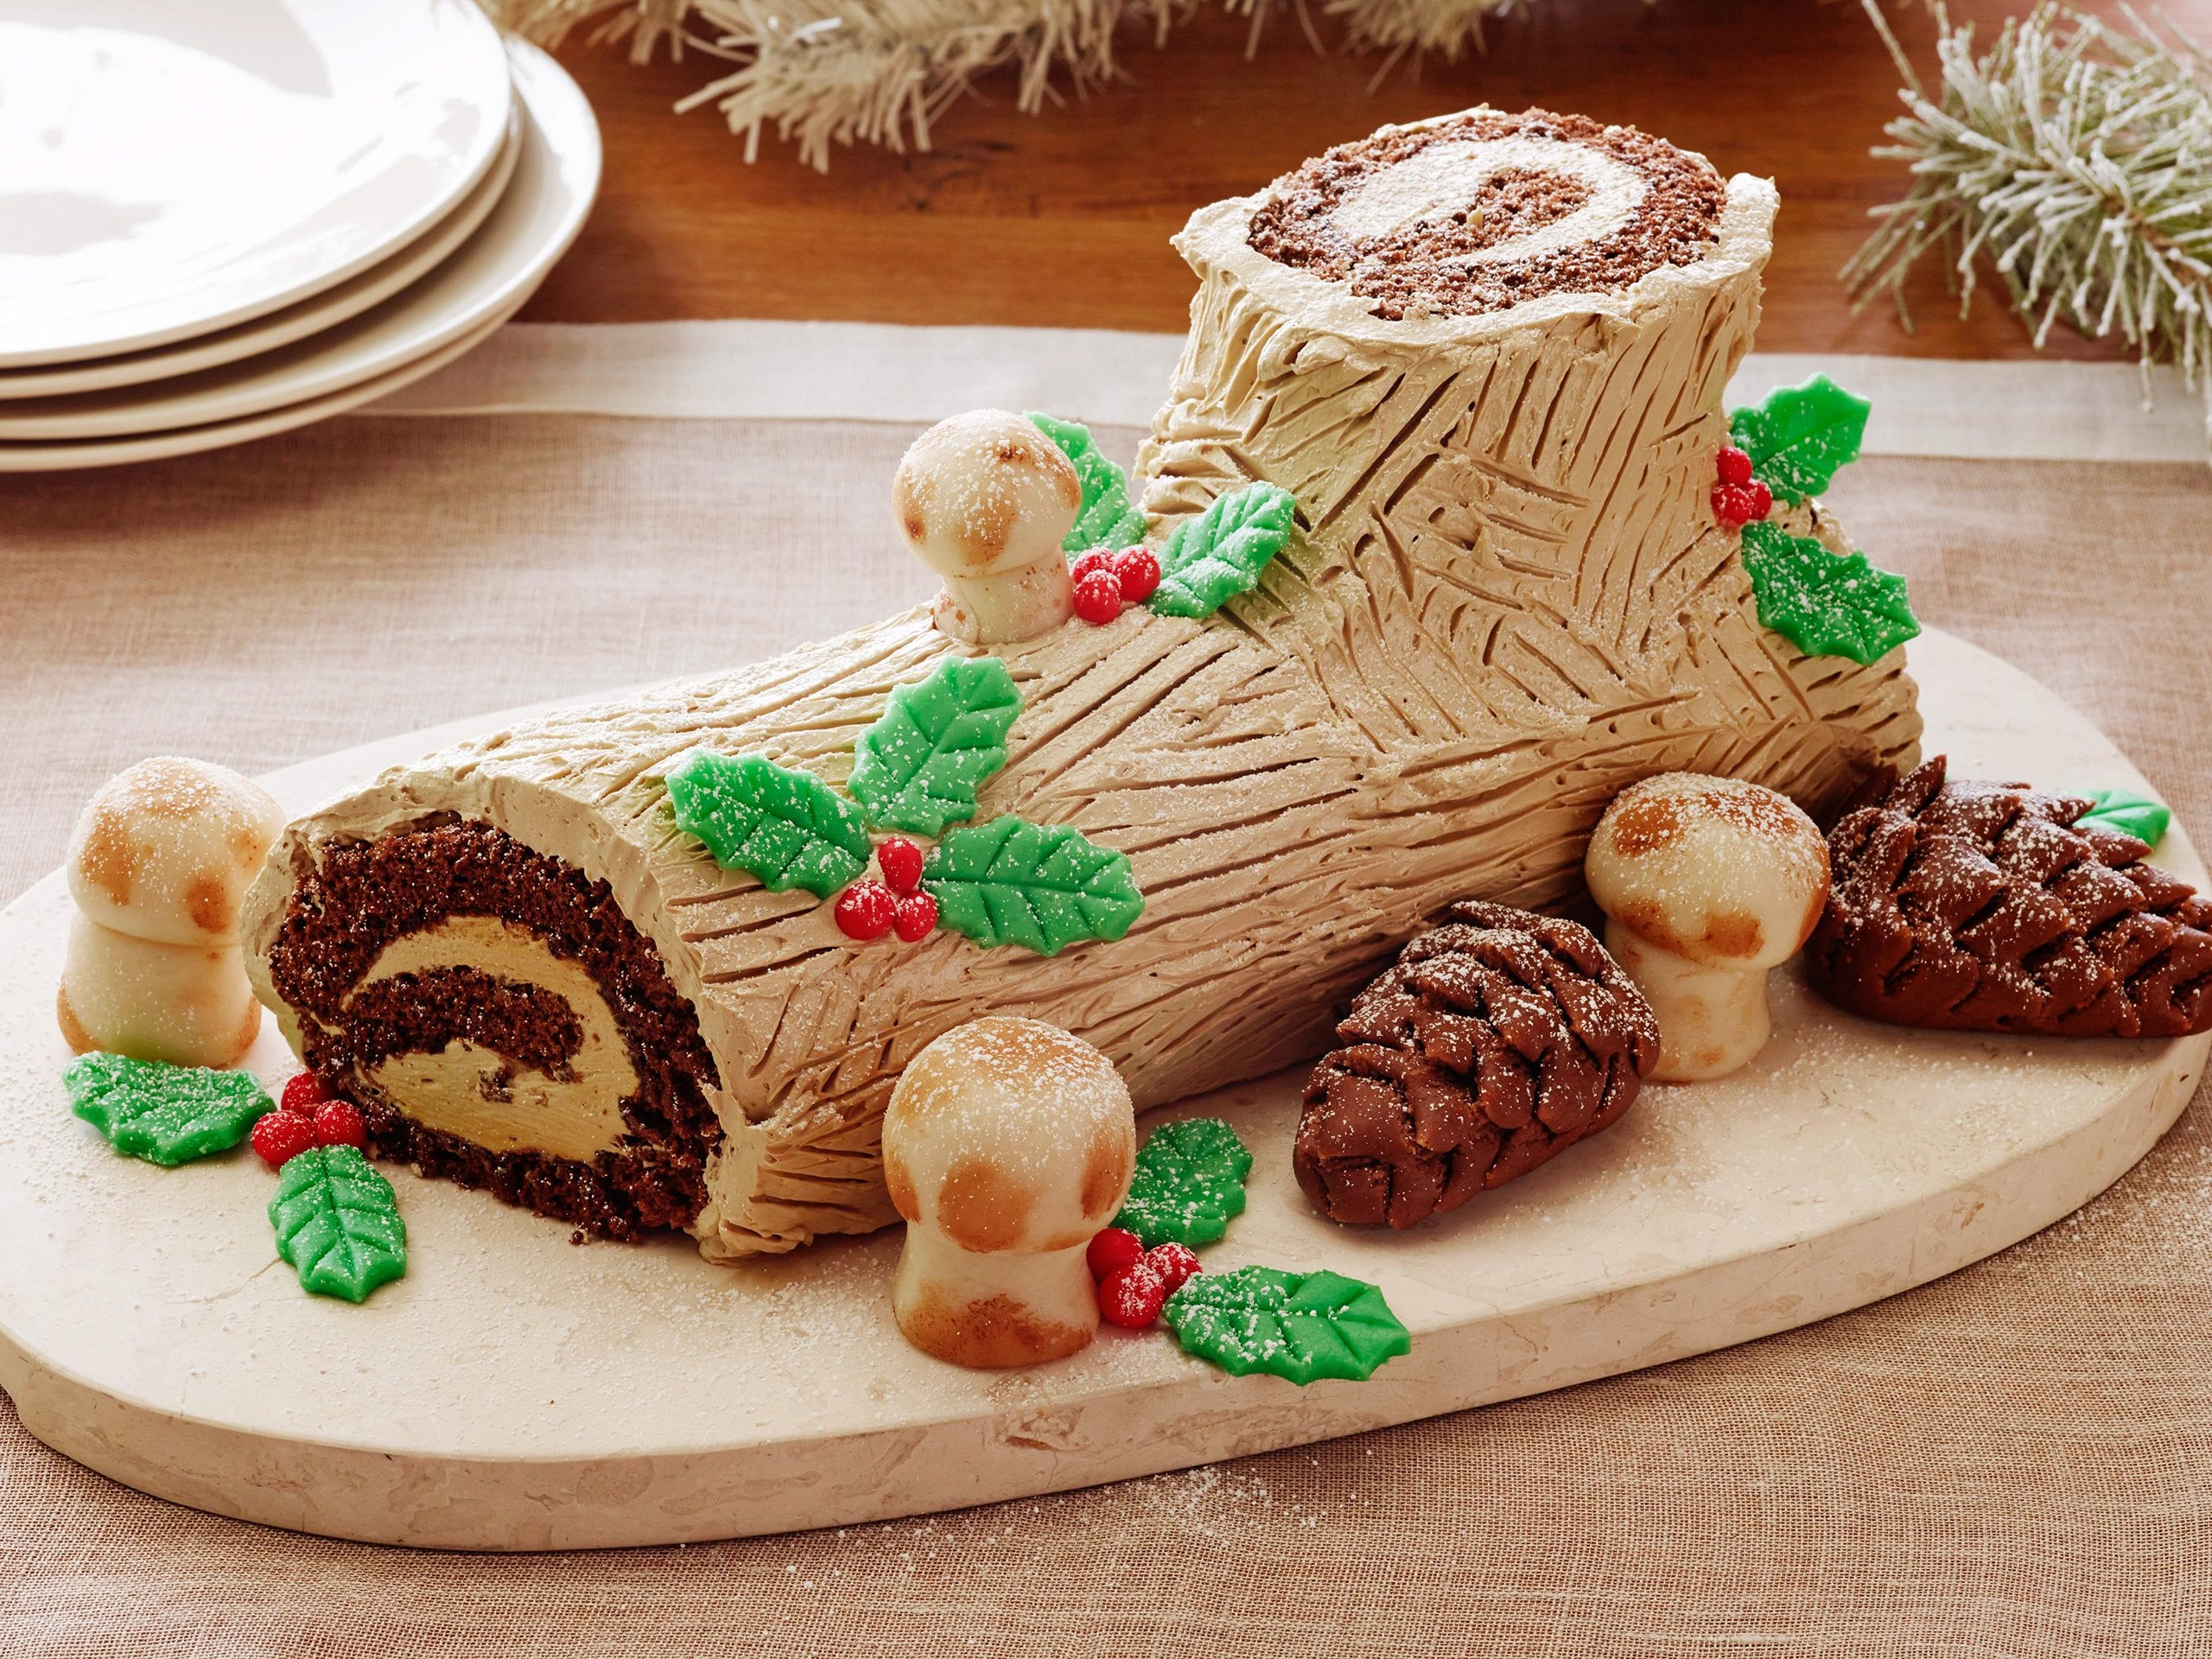 BUCHE DE NOEL Food Network Eggs, Sugar, Unsalted Butter, Instant Espresso, Rum, Chocolate Genoise Sheet, Almond Paste, Confectioners' Sugar, Light Corn Syrup, Egg Yolks, Salt, Cake Flour, Cornstarch, Alkalized Cocoa